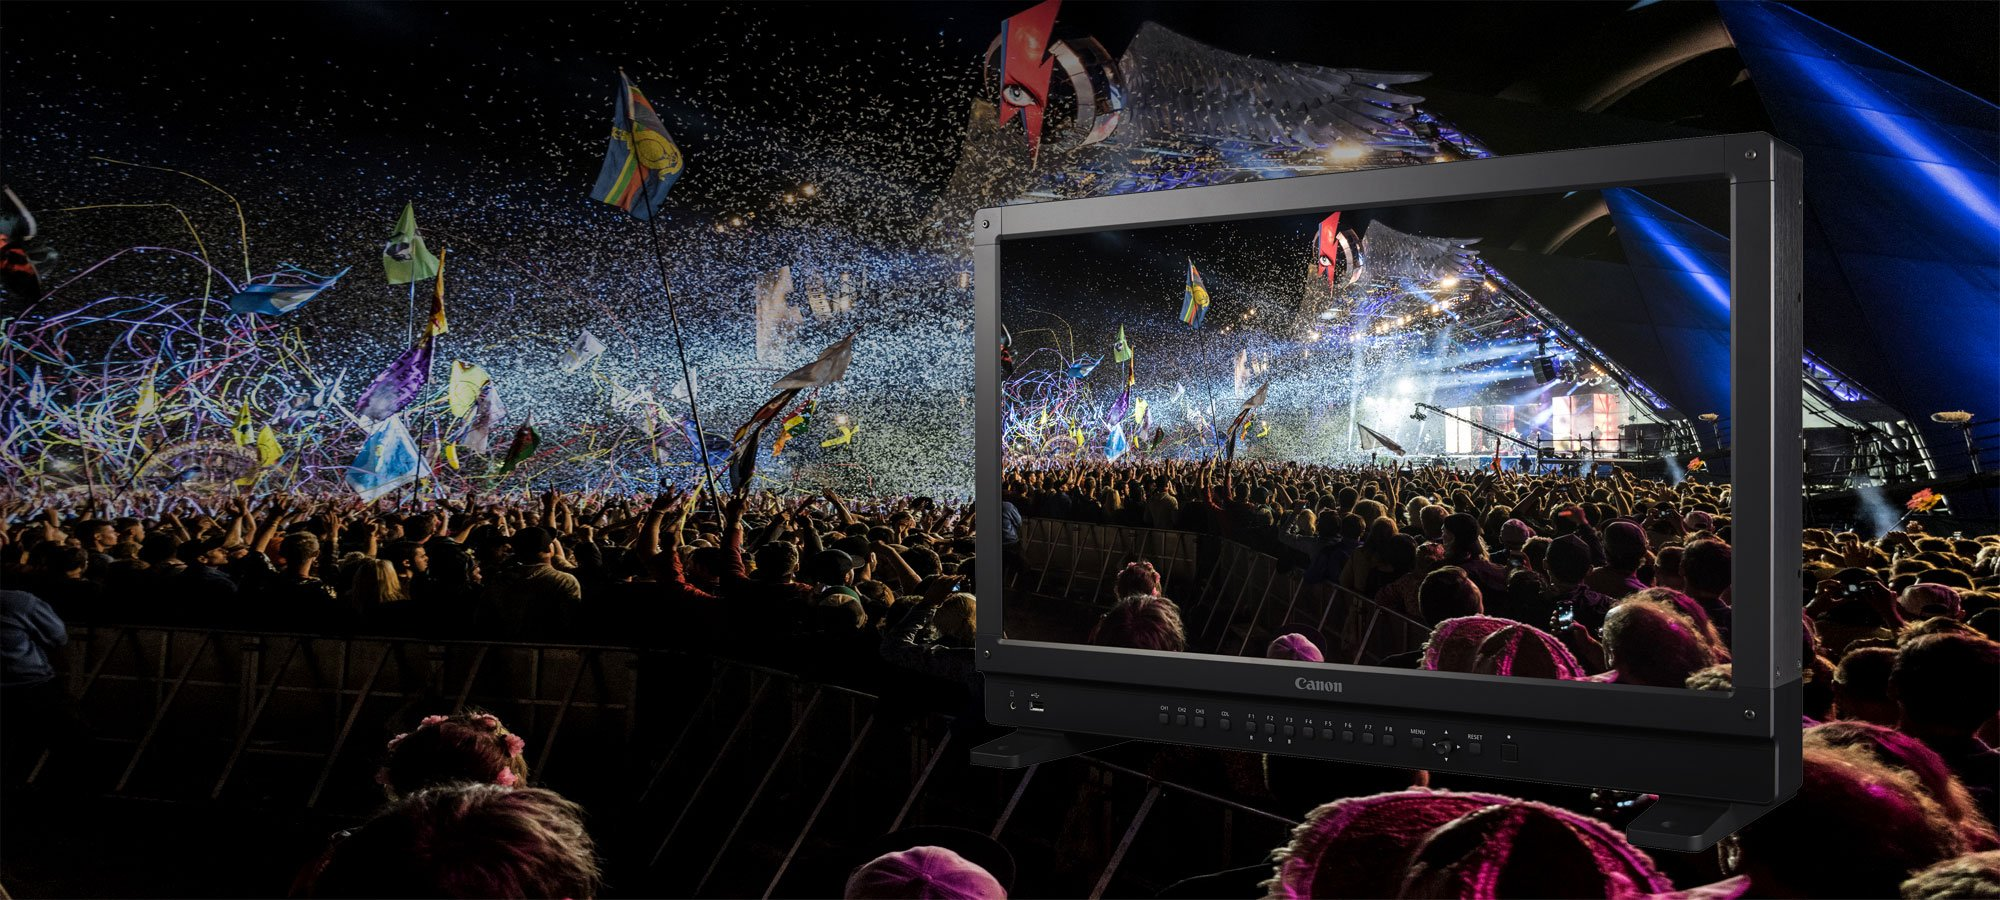 HD and 4K Broadcast Equipment Hire: Canon DP-V2410 24